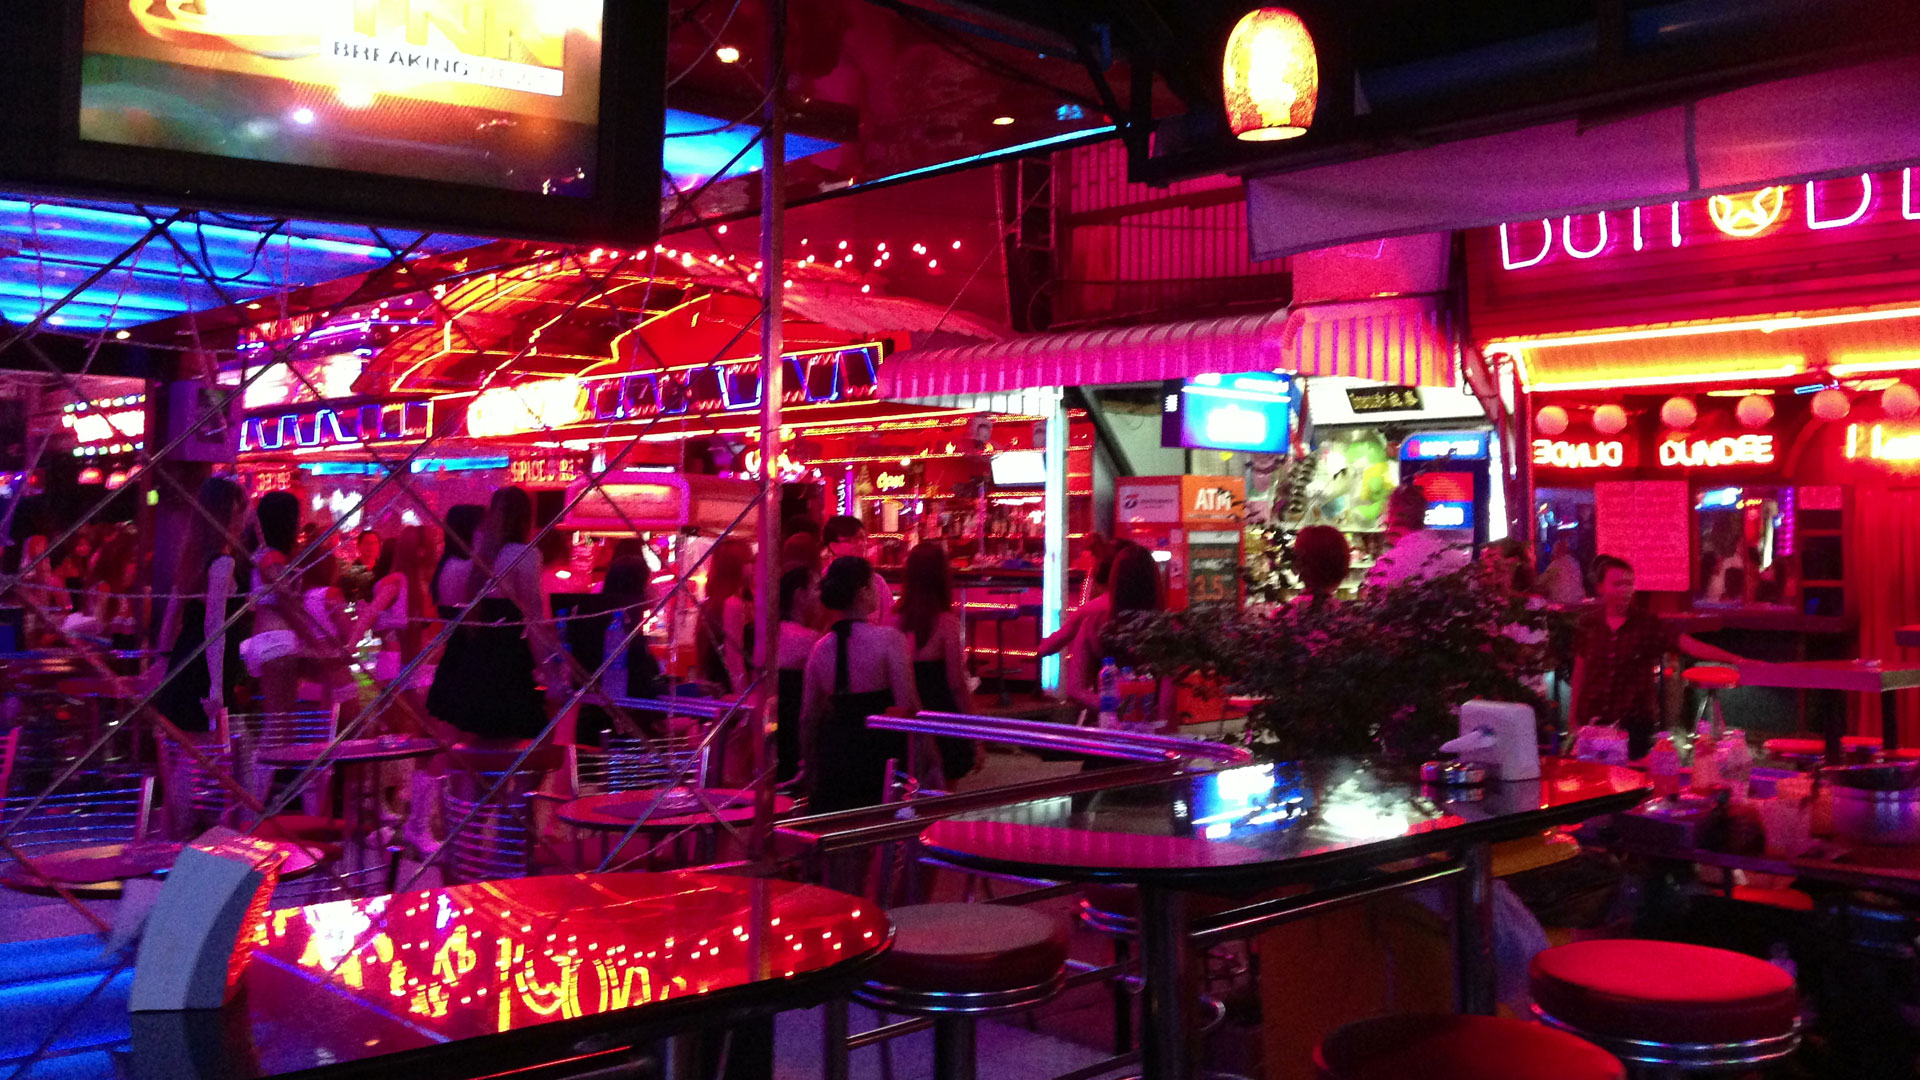 Go Go Bars and overpriced drinks in Soi Cowboy Bangkok